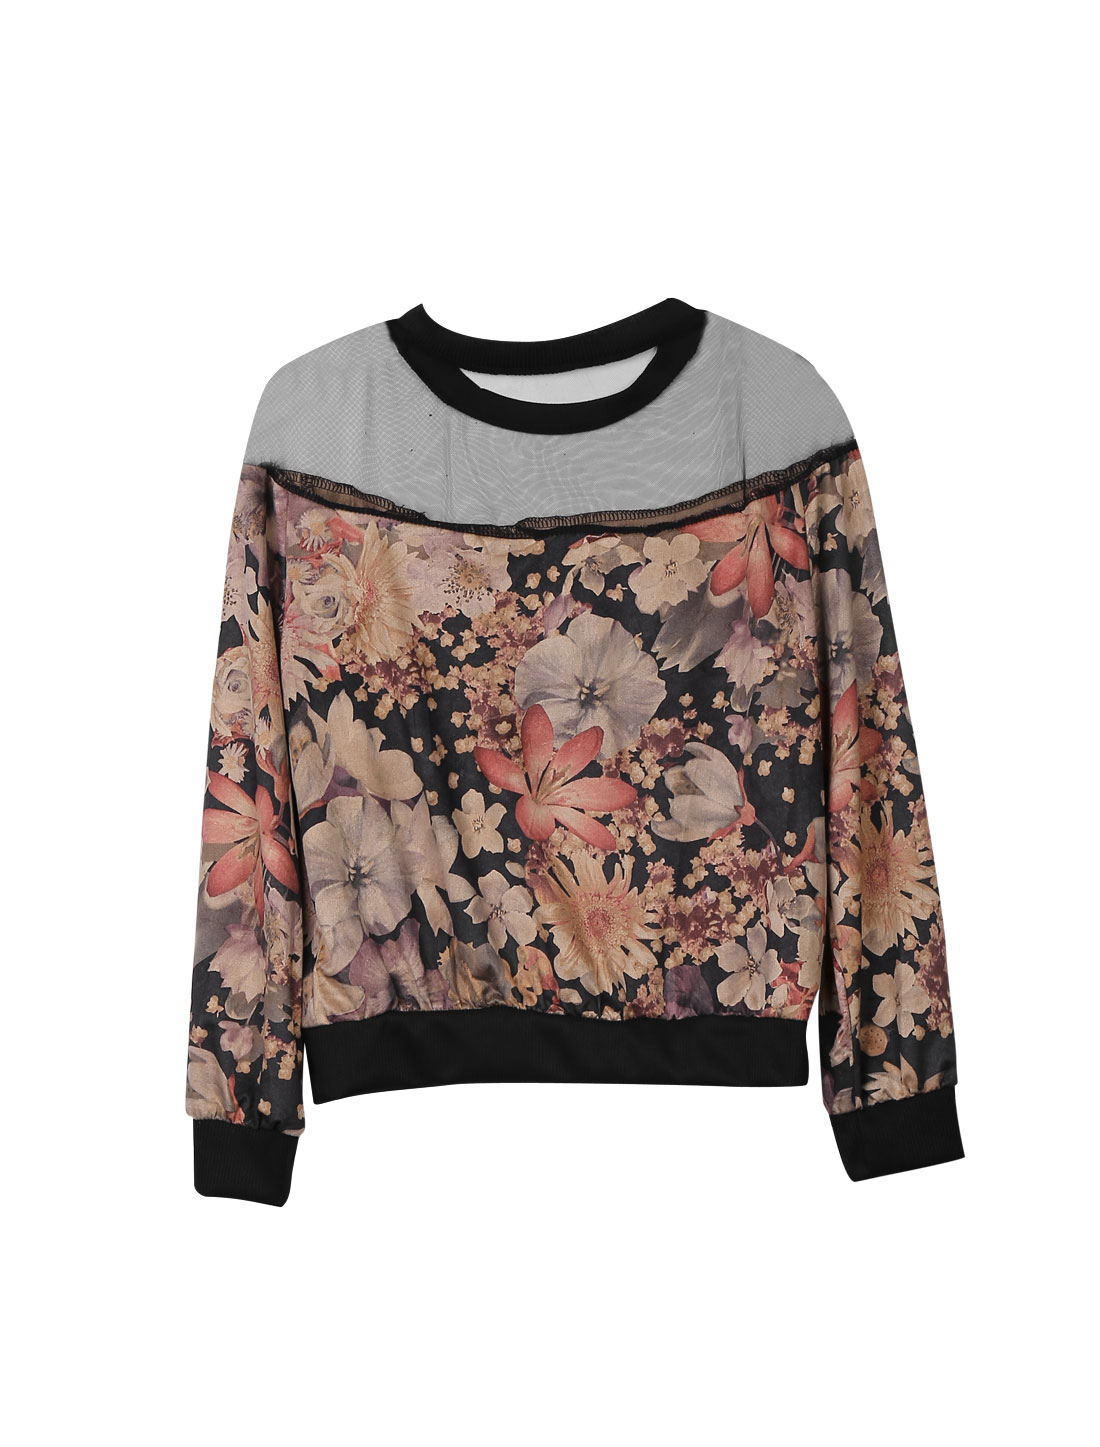 Women Flower Pattern Mesh Splicing Design Casual Top Multicolor XS